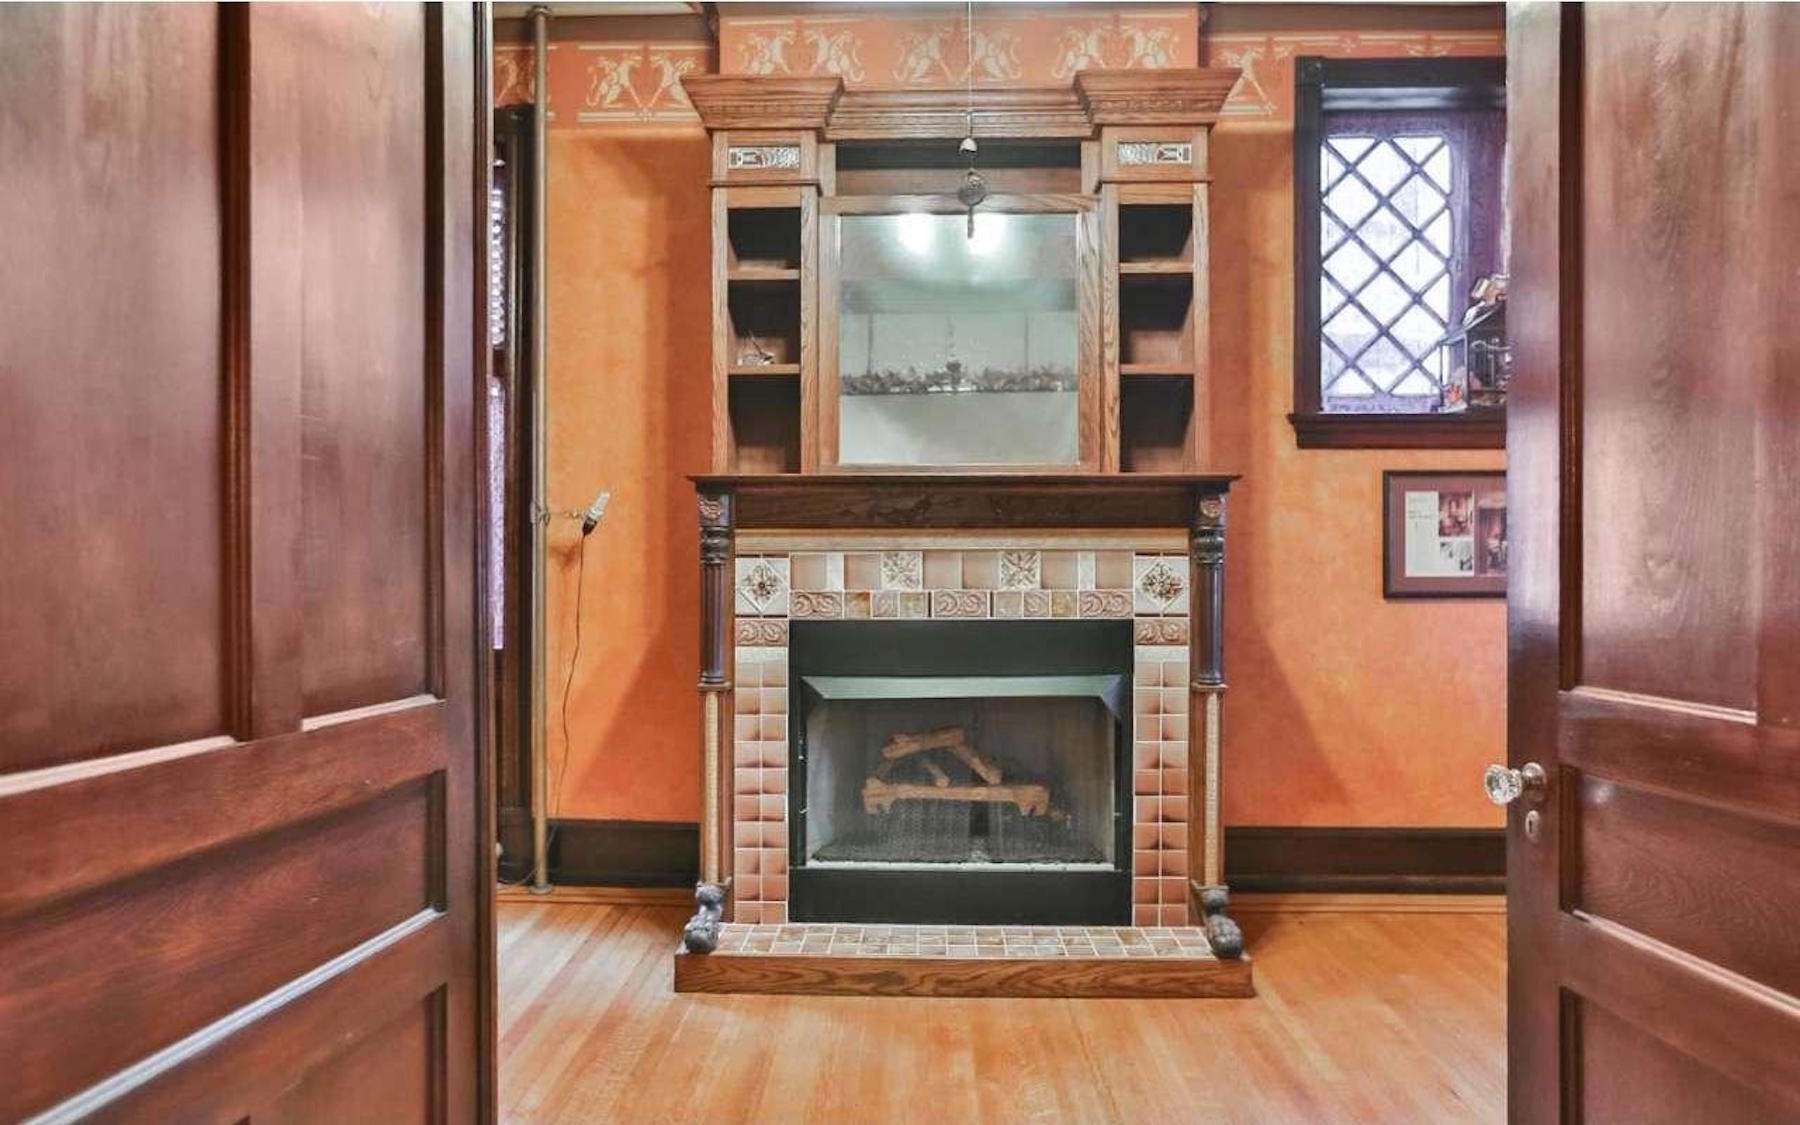 restored 250k germantown victorian has addams family vibes